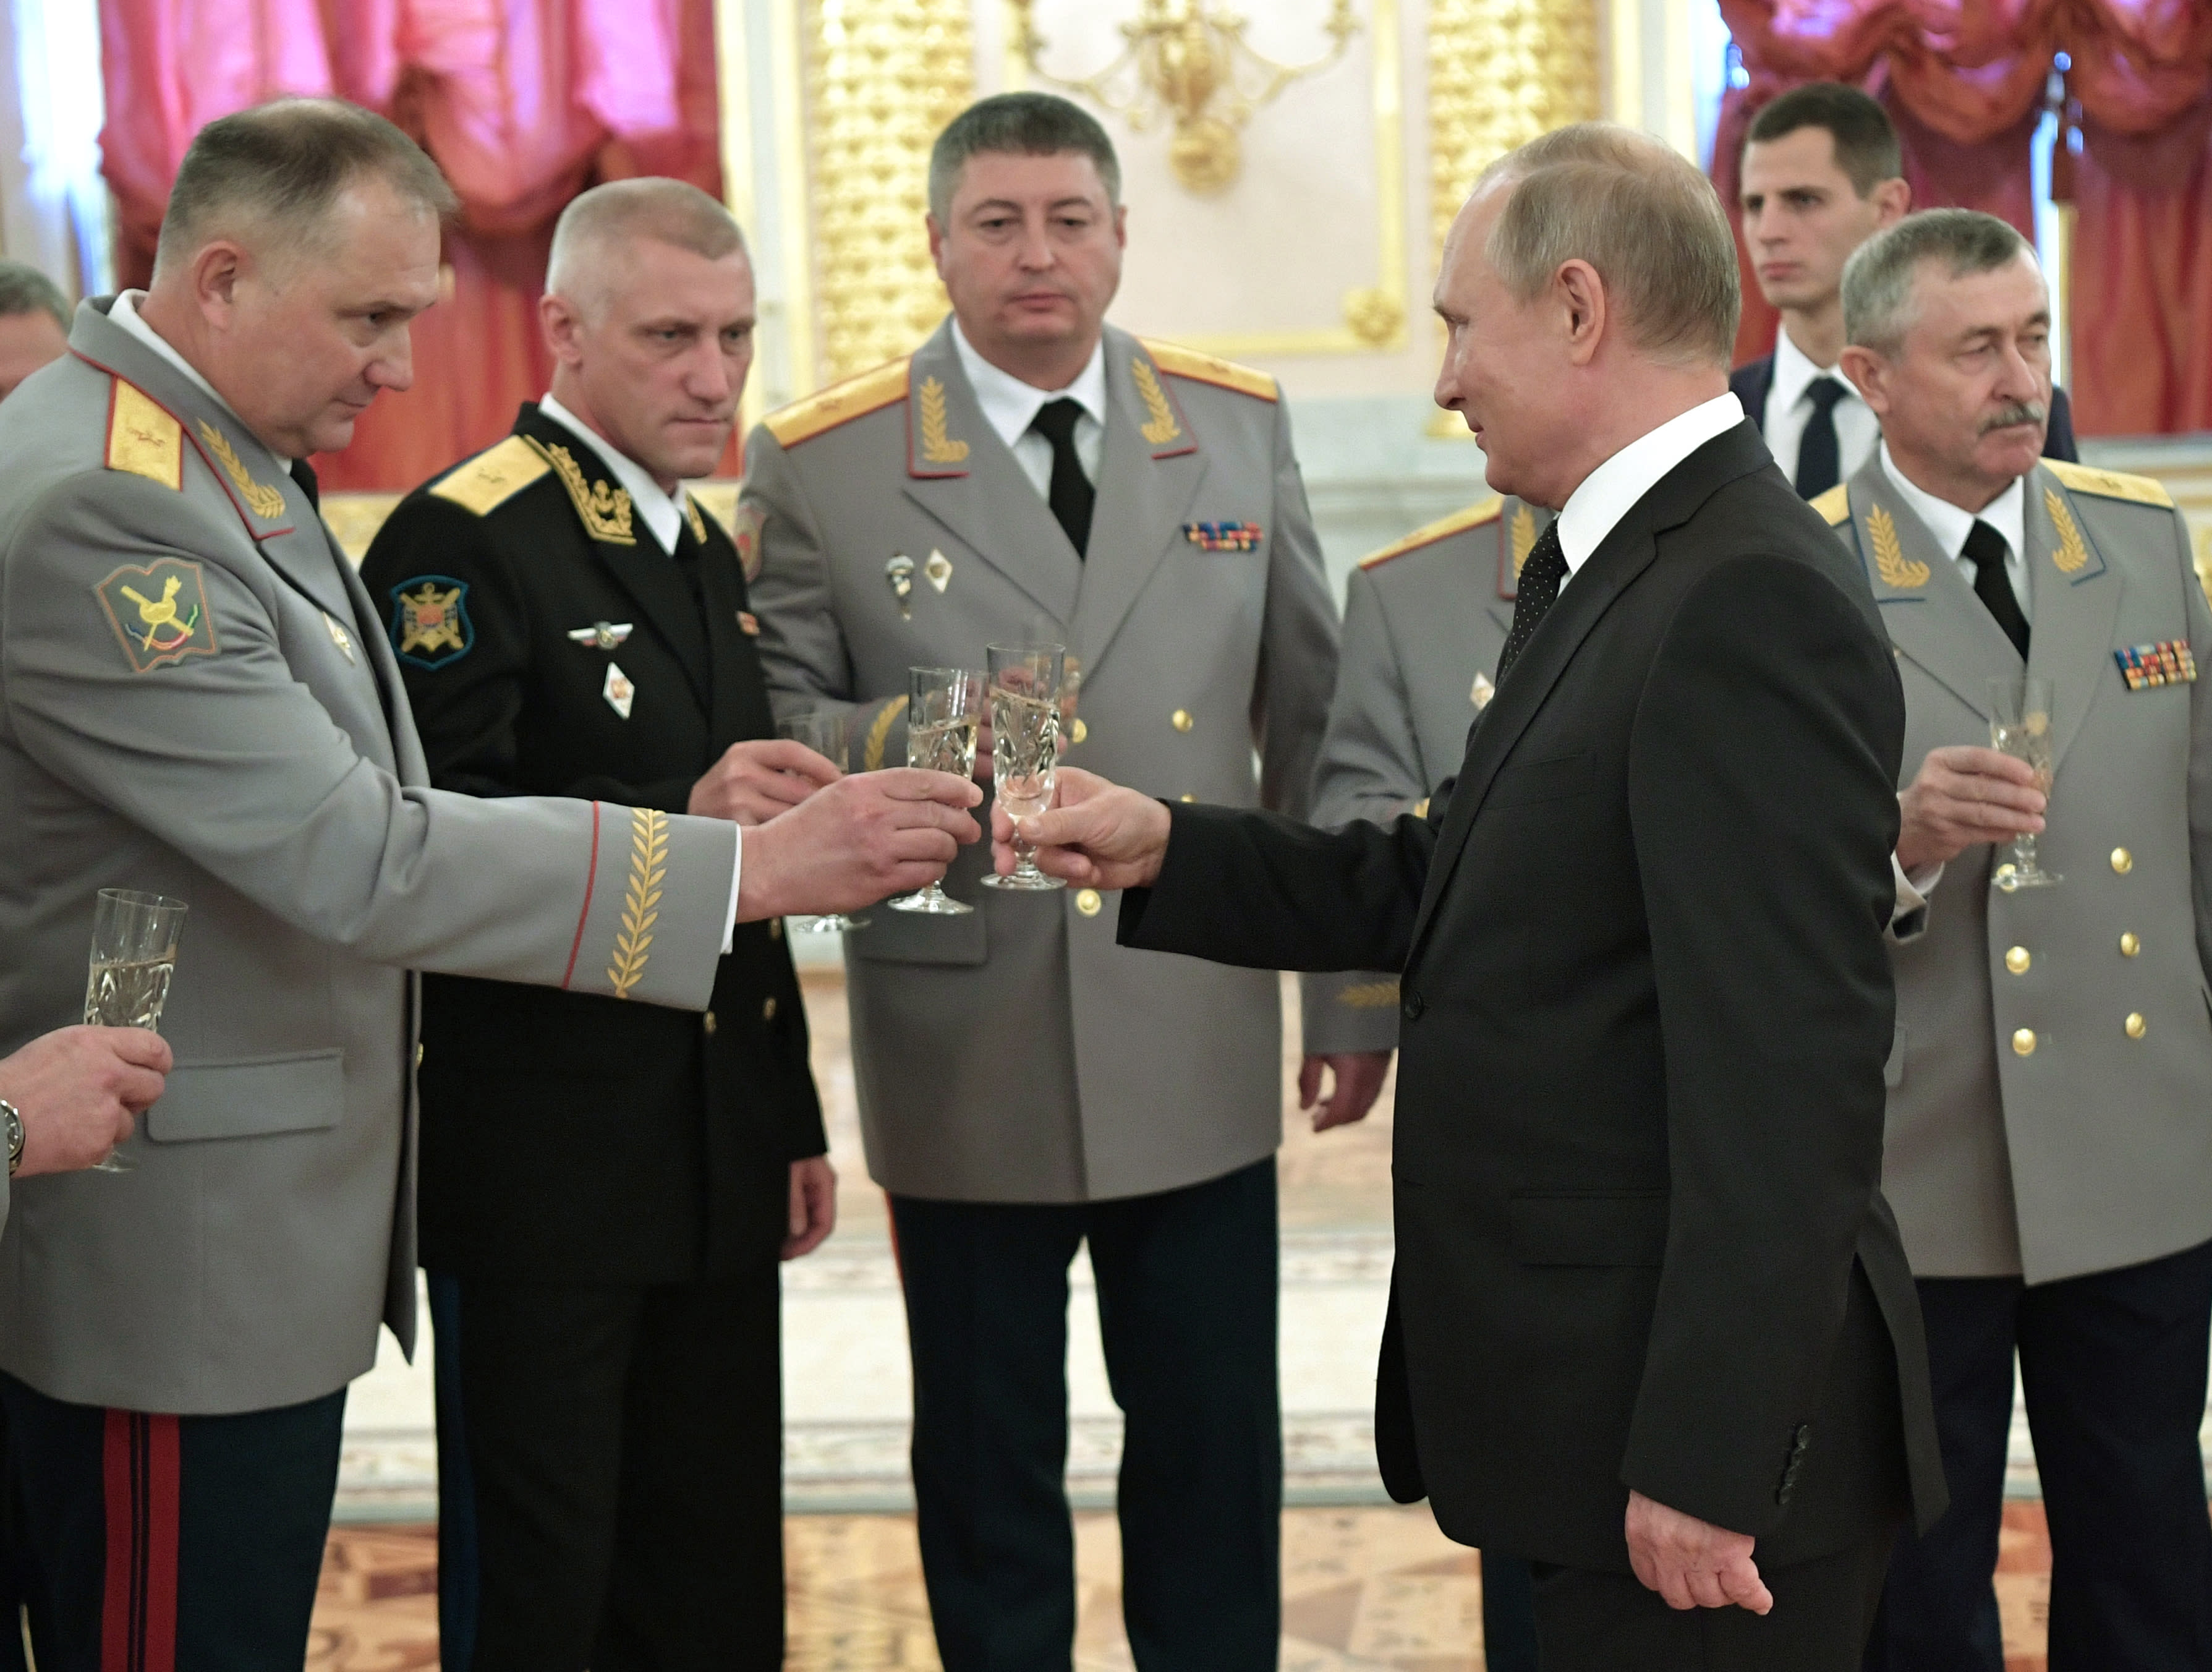 Russian President Vladimir Putin, foreground right, toasts with top military officers and law enforcement officials in the Kremlin in Moscow, Russia, Thursday, Oct. 25, 2018. Putin said that Russia has adhered to its obligations in the arms control sphere, but noted that Russian arsenals will be modernized to ensure protection from any potential threats. (Alexei Nikolsky, Sputnik, Kremlin Pool Photo via AP)